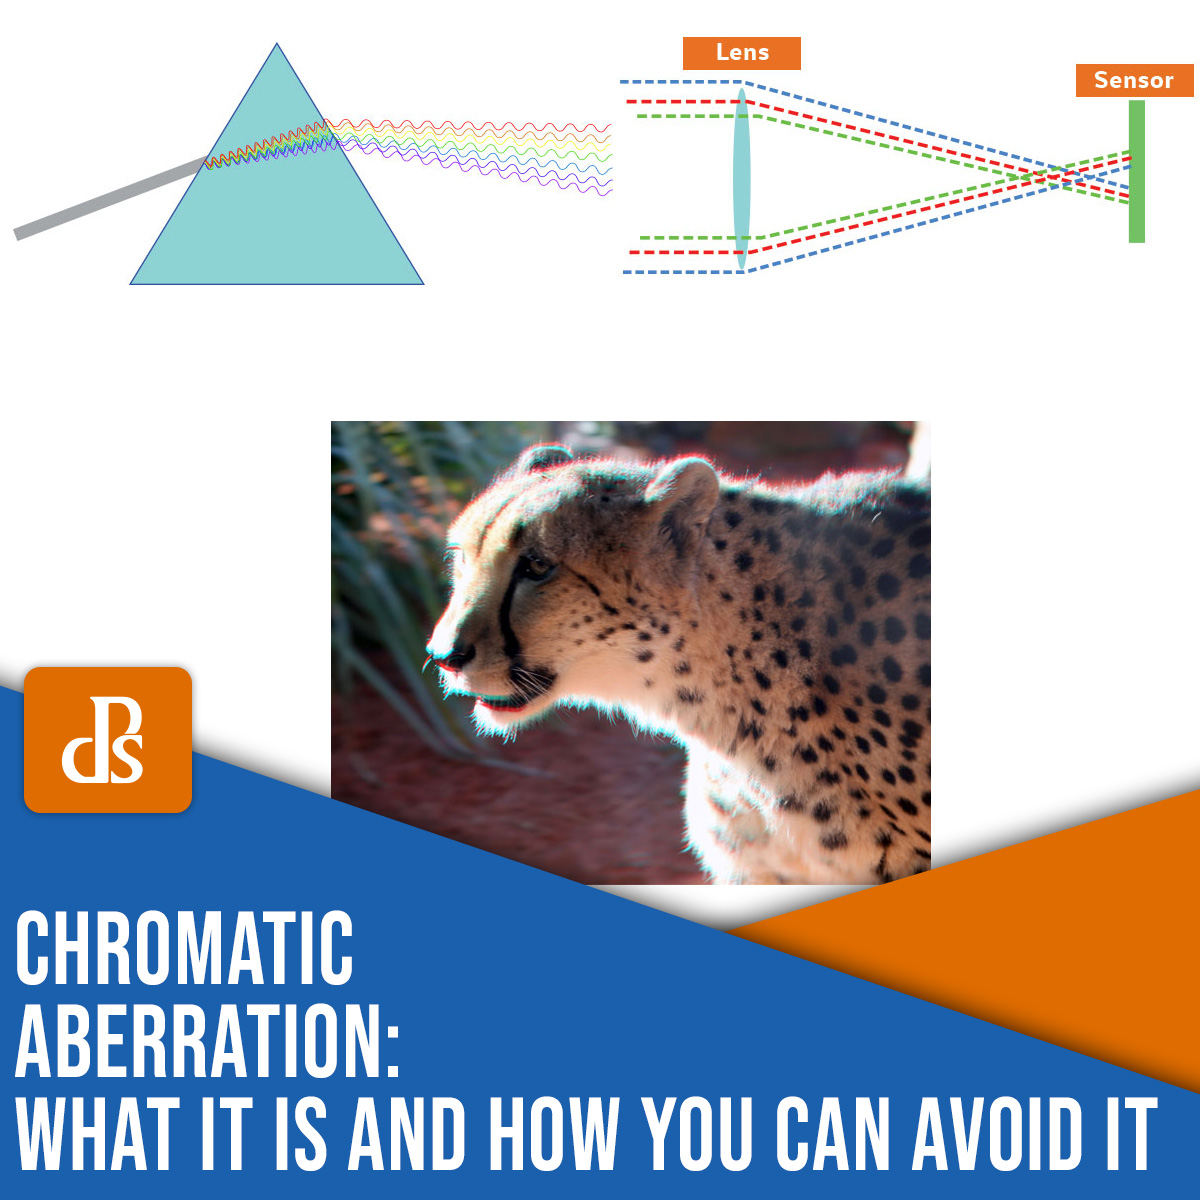 Chromatic Aberration: What It Is and How You Can Avoid It